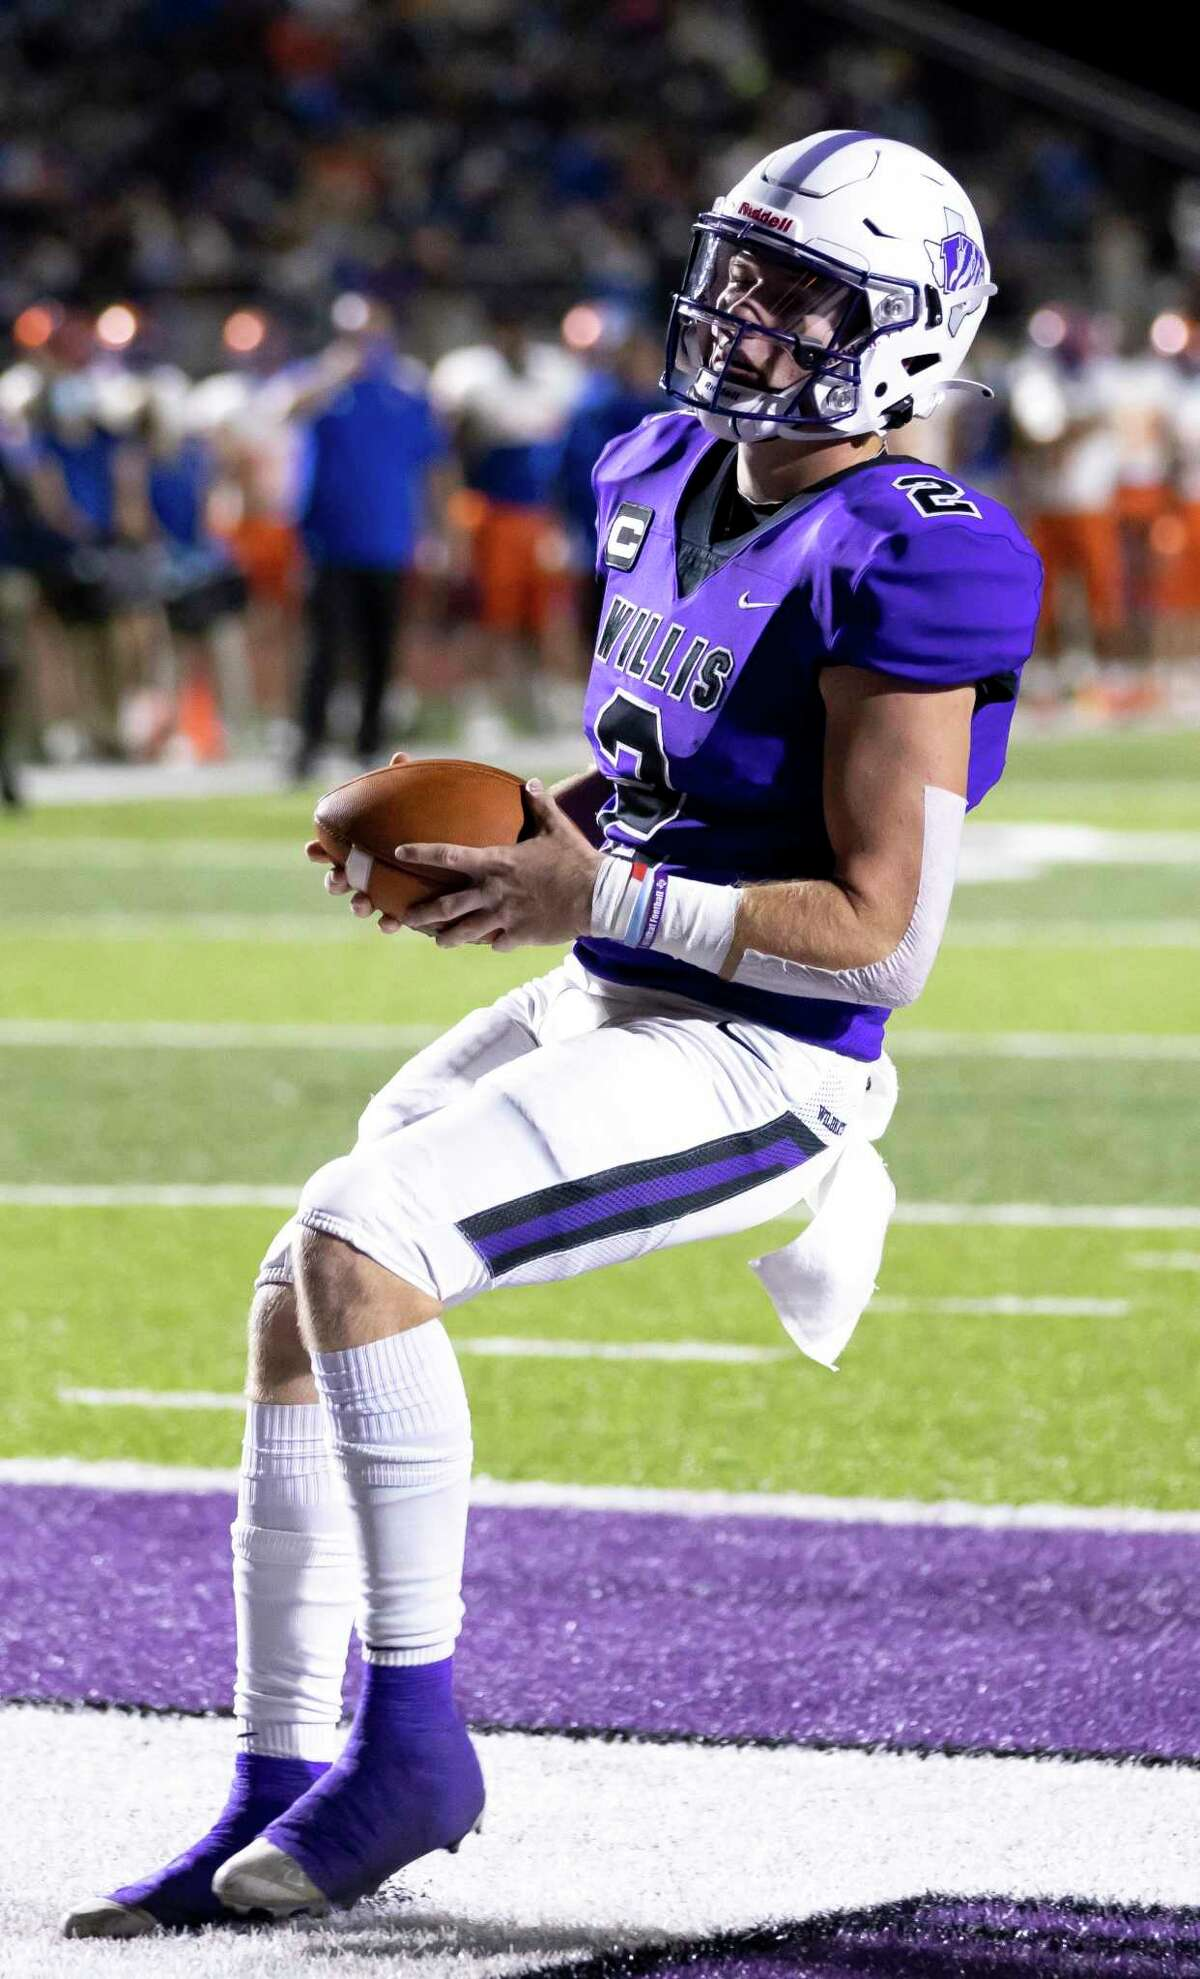 Willis quarterback Steele Bardwell (2) scores a touchdown during the second quarter of a District 13-6A football game at Berton A. Yates Stadium in Willis on Friday, Nov. 20, 2020.